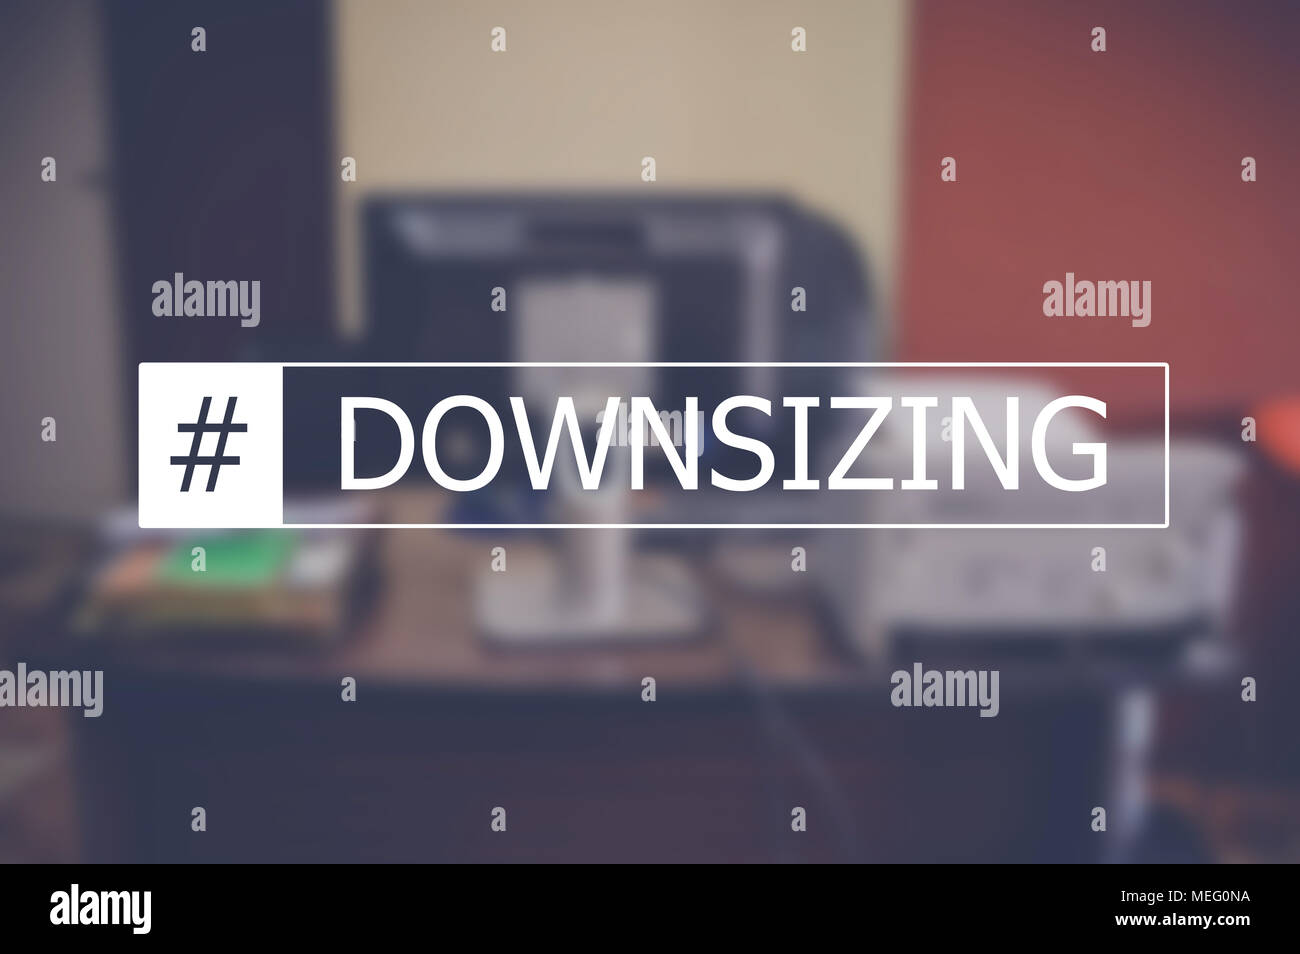 Downsizing word with business blurring background - Stock Image